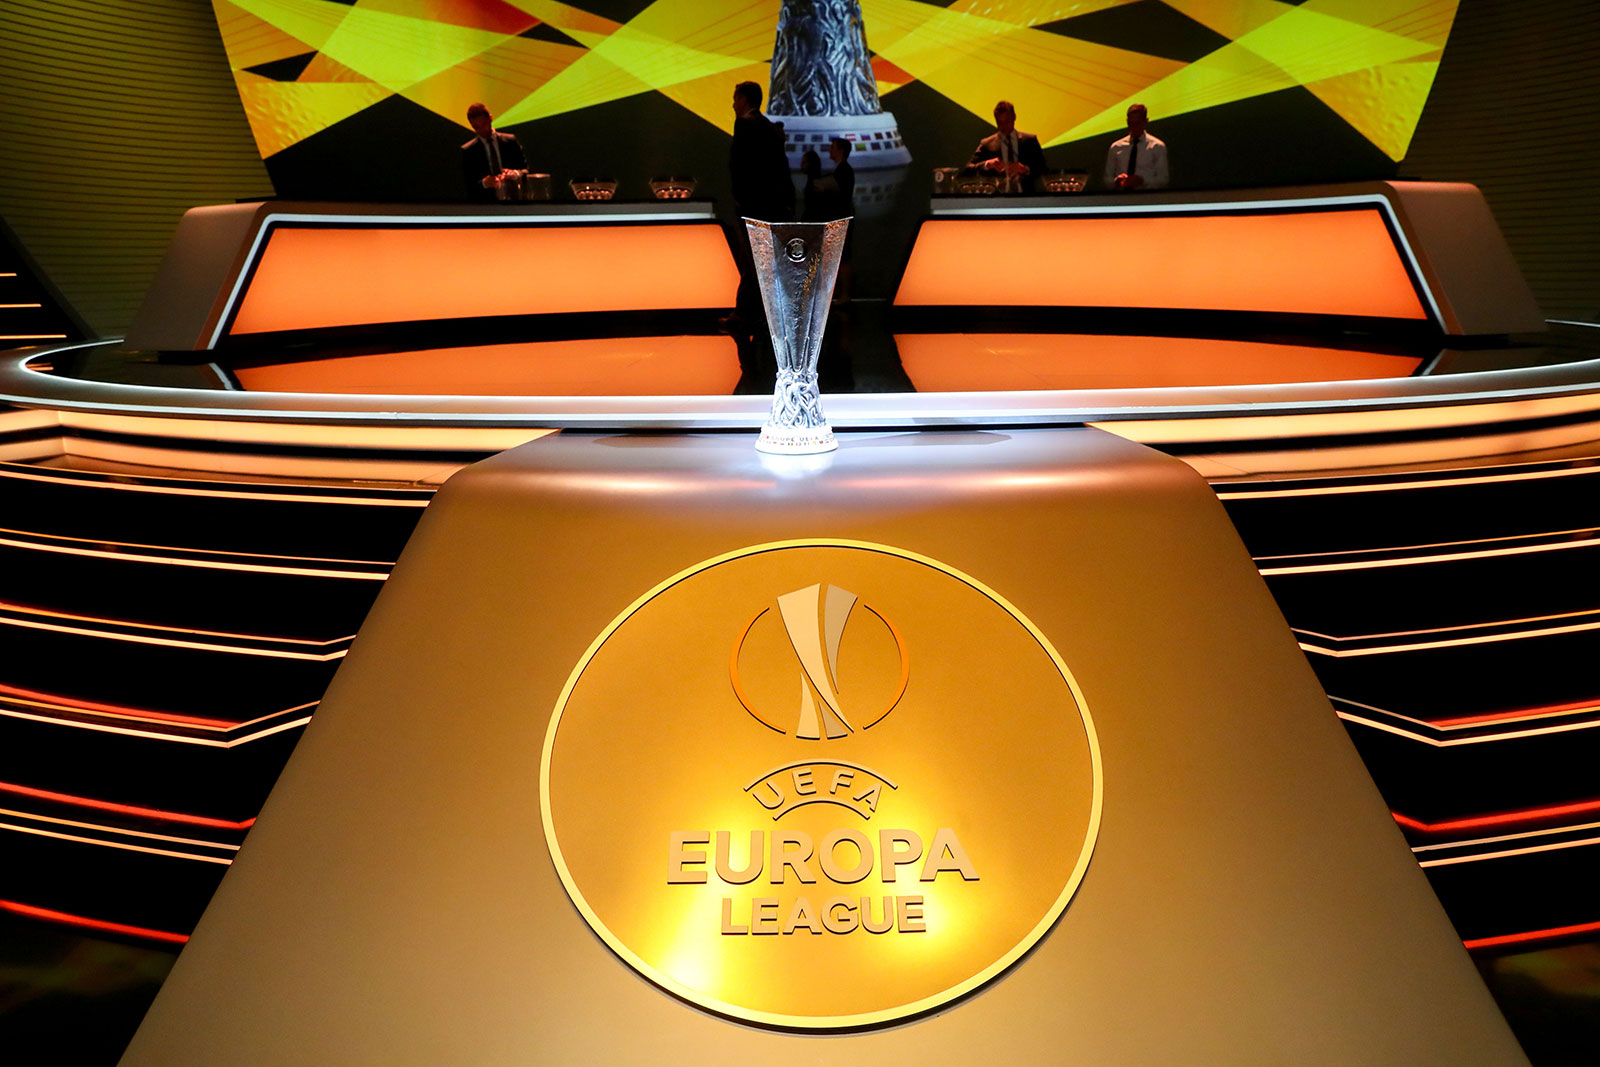 UEFA Europa League Trophy displayed during the draw for UEFA Europa League football tournament at The Grimaldi Forum in Monaco on August 31, 2018. (Photo by Valery HACHE / AFP) (Photo credit should read VALERY HACHE/AFP/Getty Images)